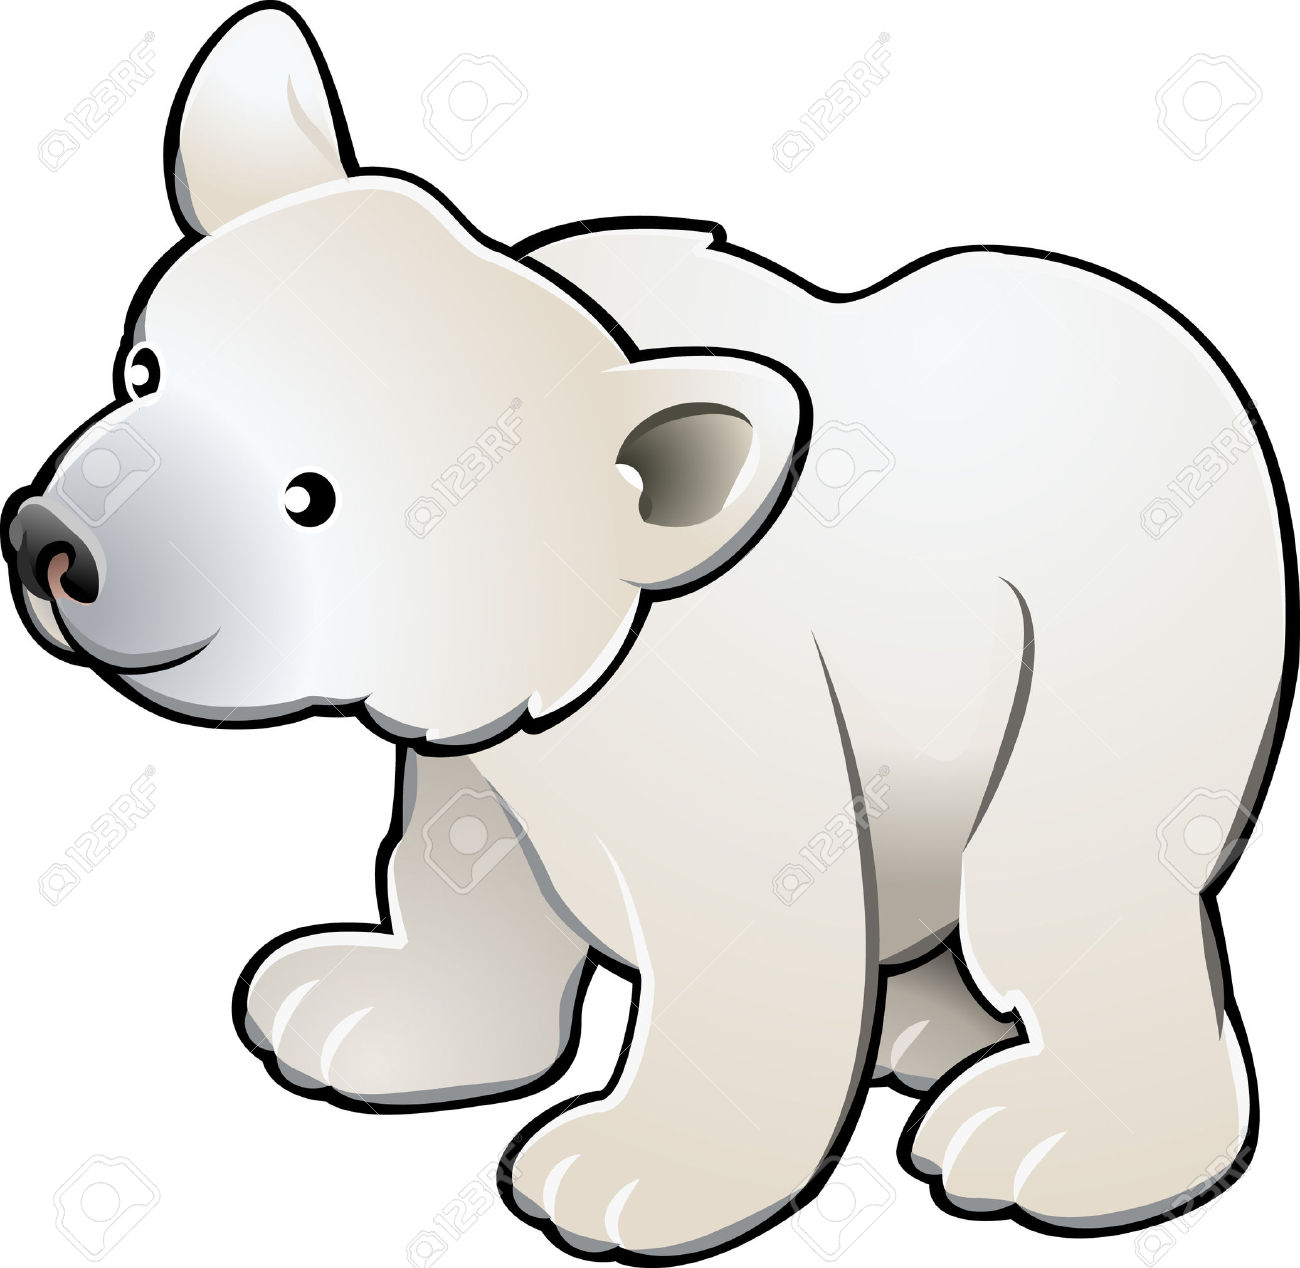 Clipart ours polaire.